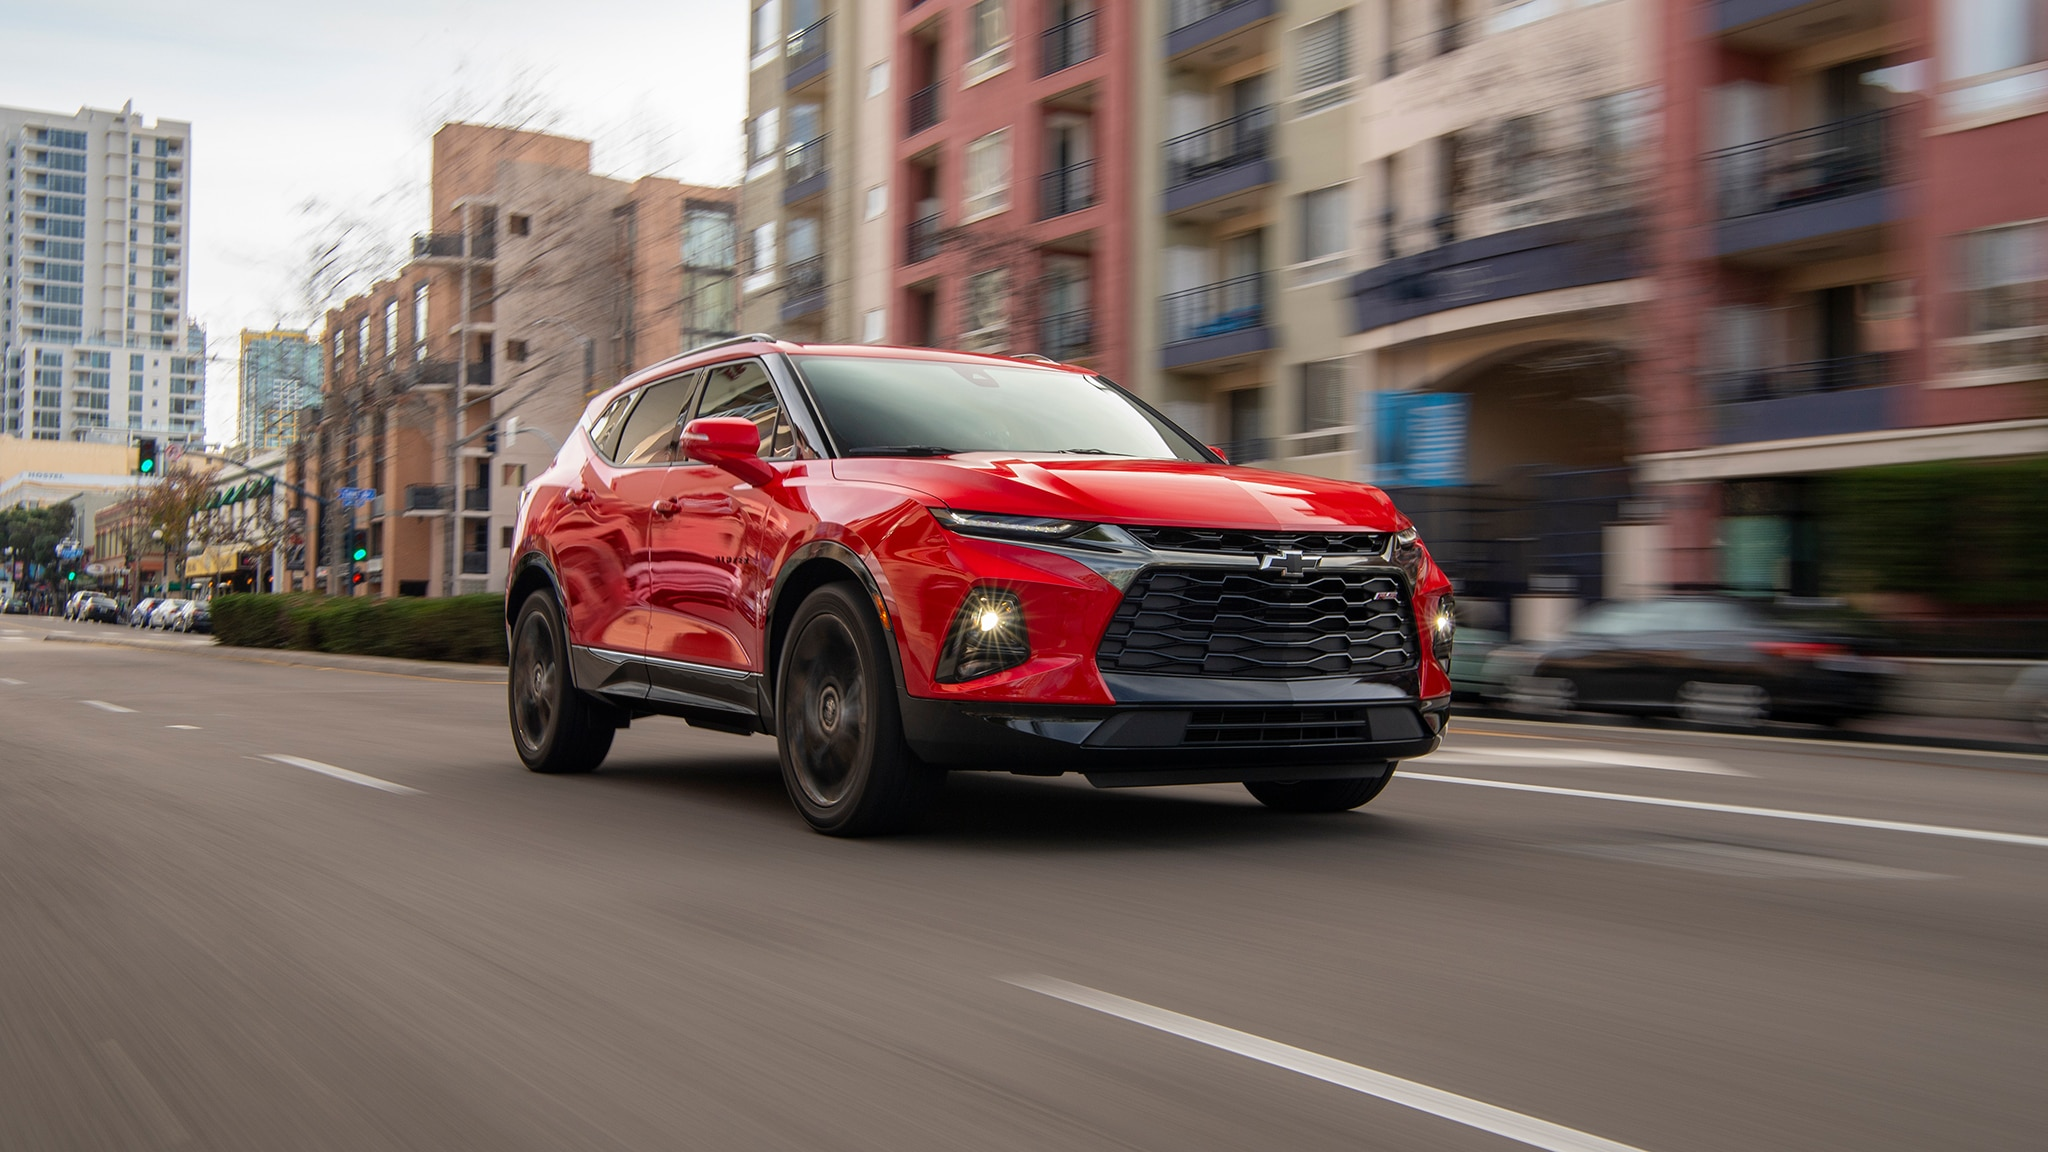 Report The Chevy Blazer Will Get A Three Row Variant Next Year